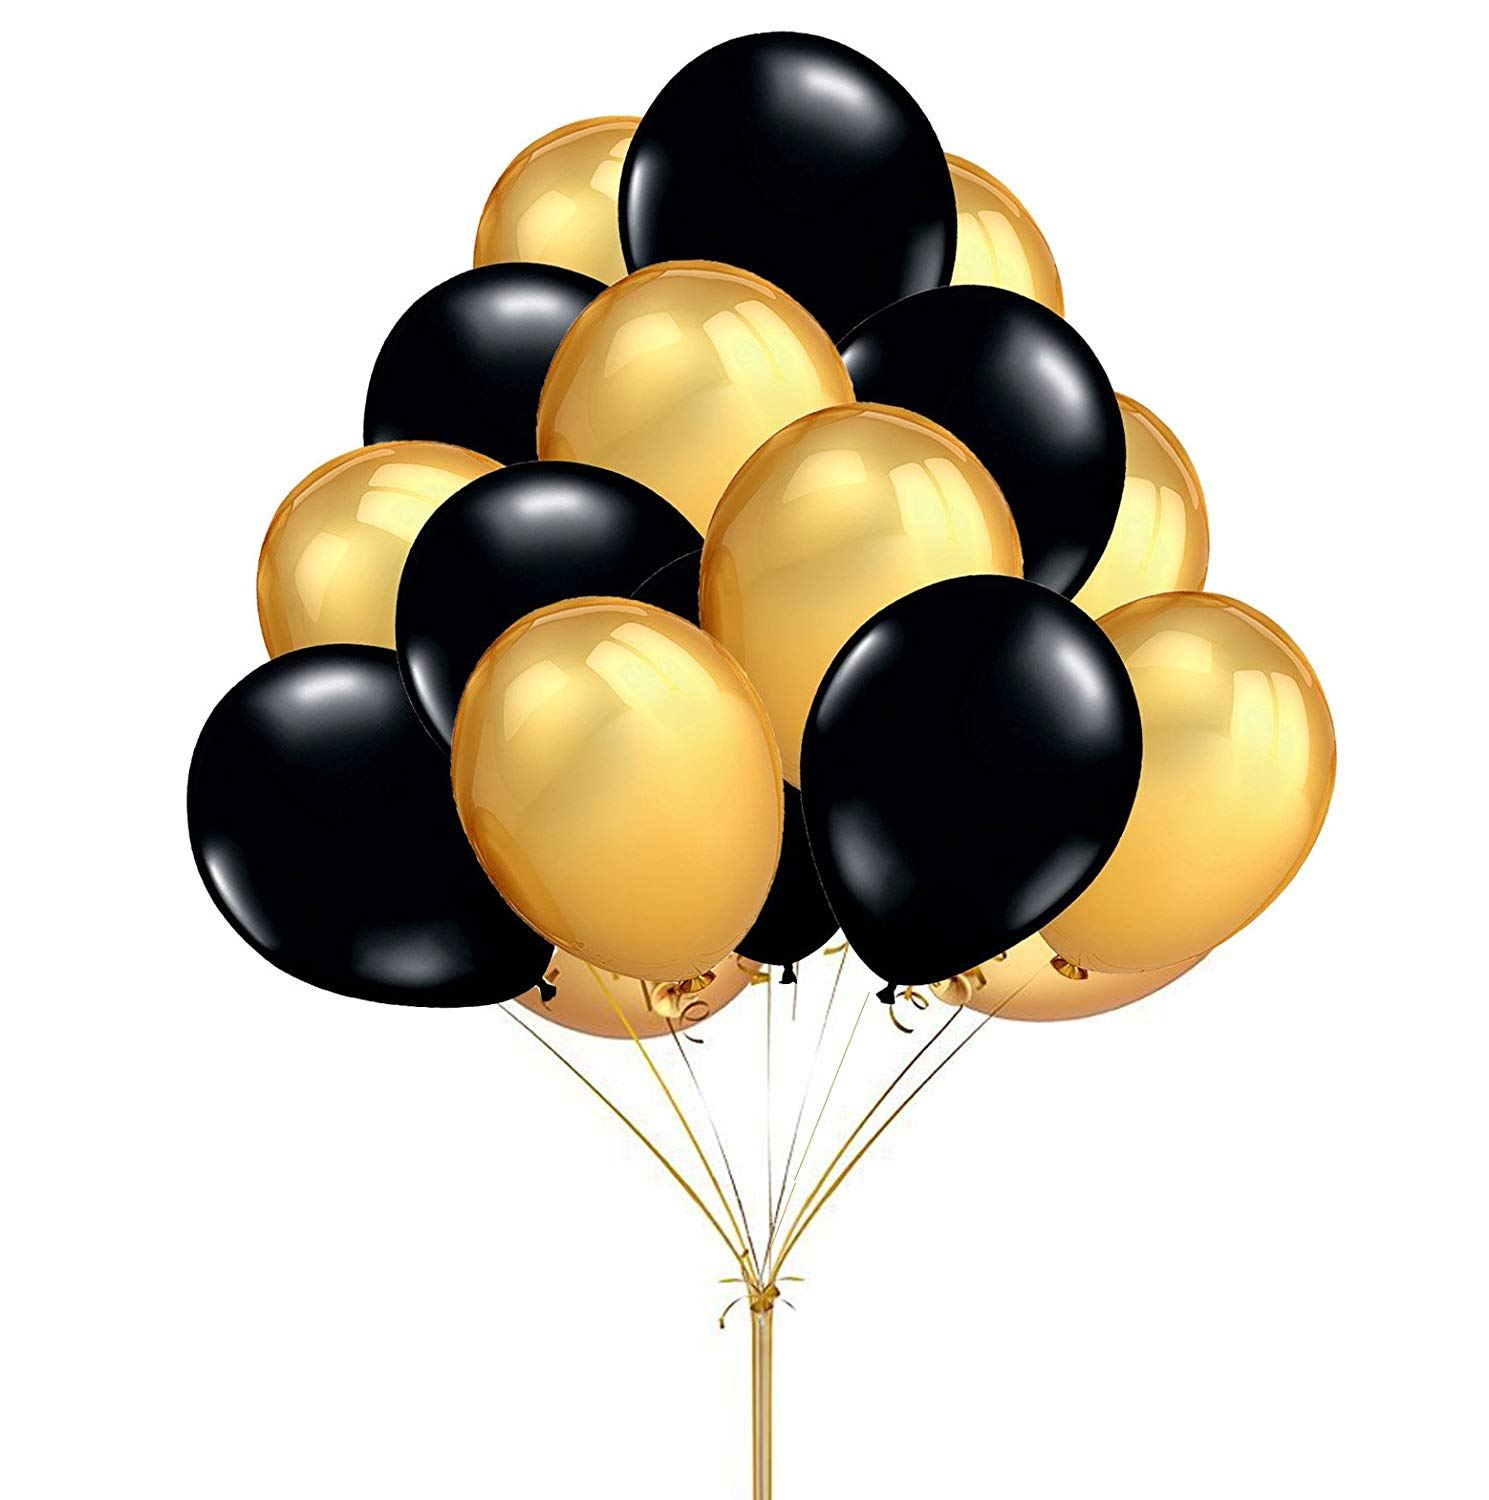 METABLE 100pcs Gold Black Round Balloons latex perfect decorationg your birthday party wedding favor supplies.